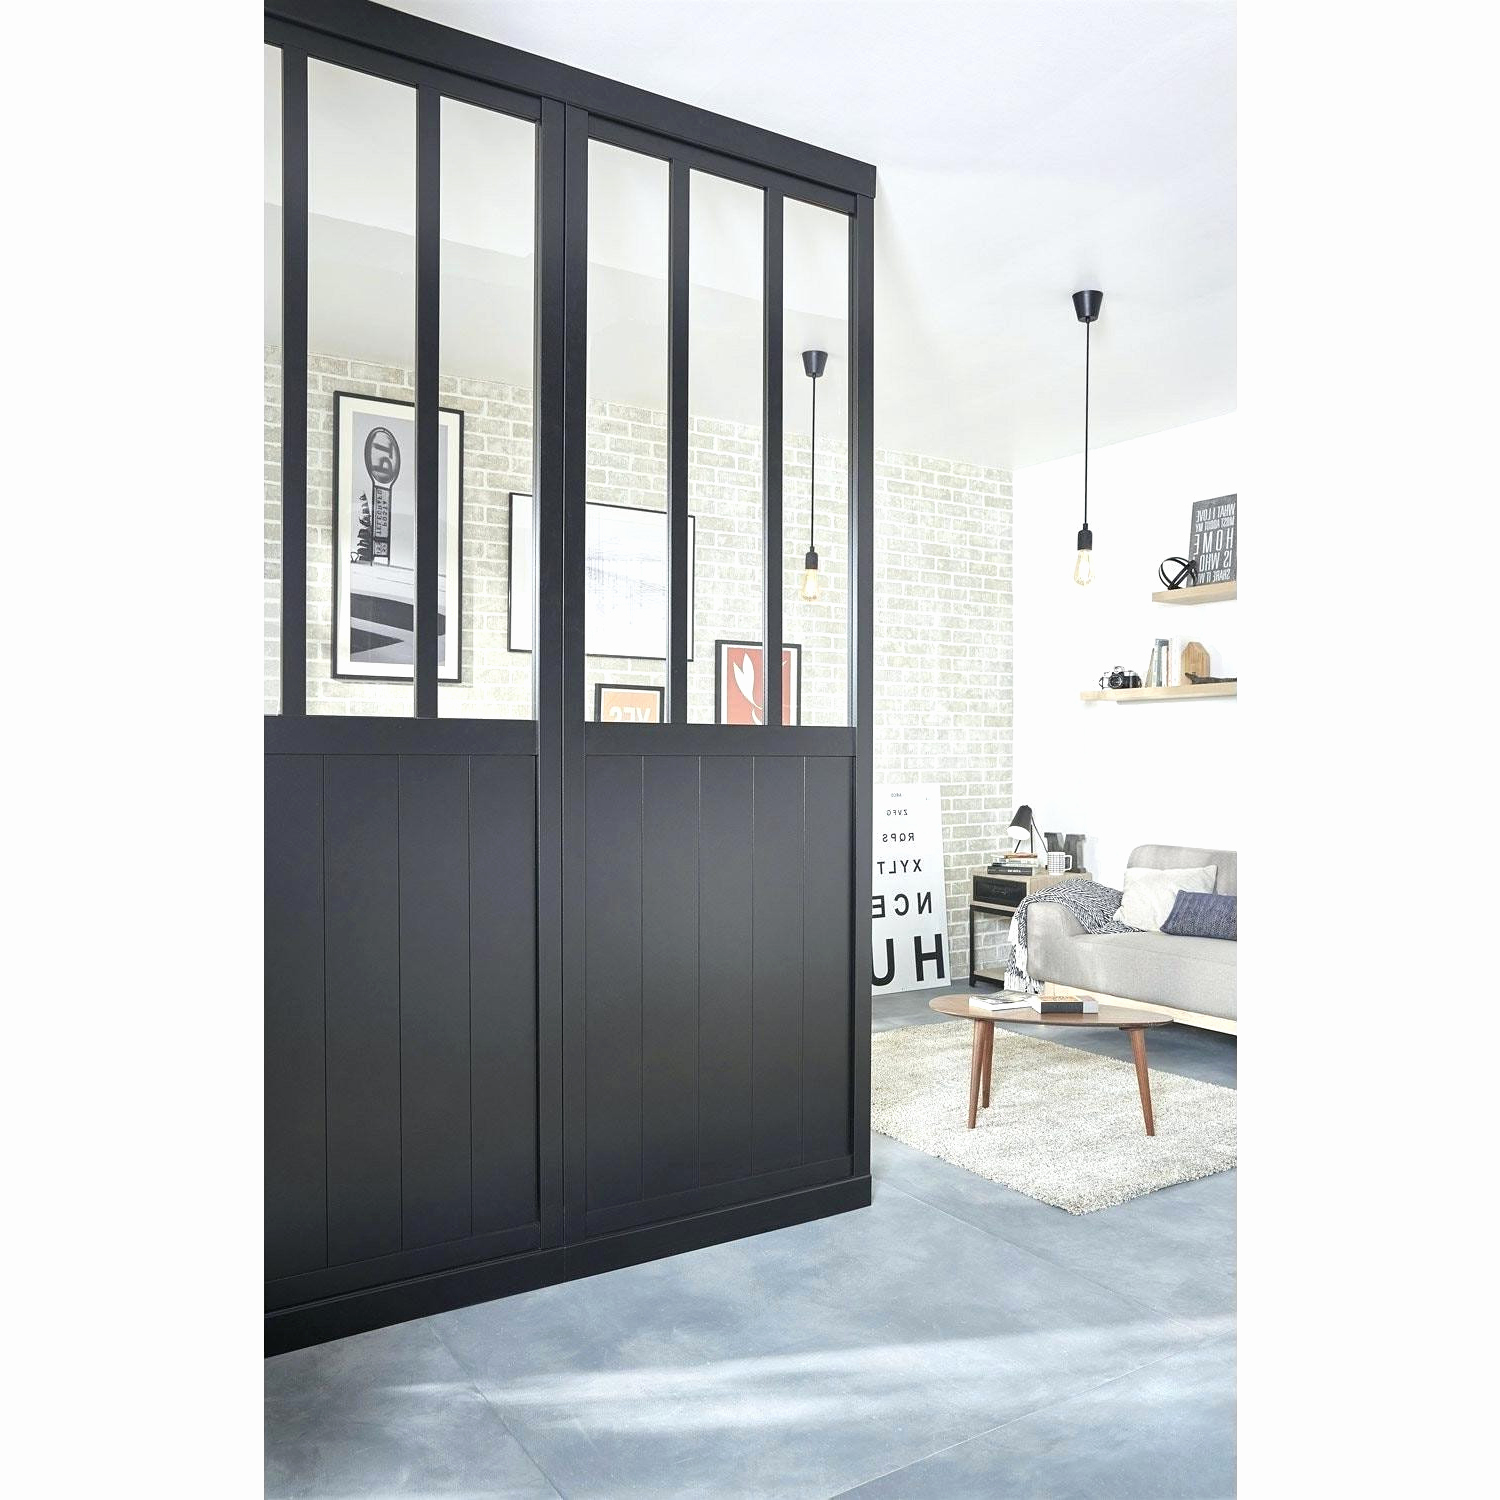 cloison amovible bois ikea. Black Bedroom Furniture Sets. Home Design Ideas